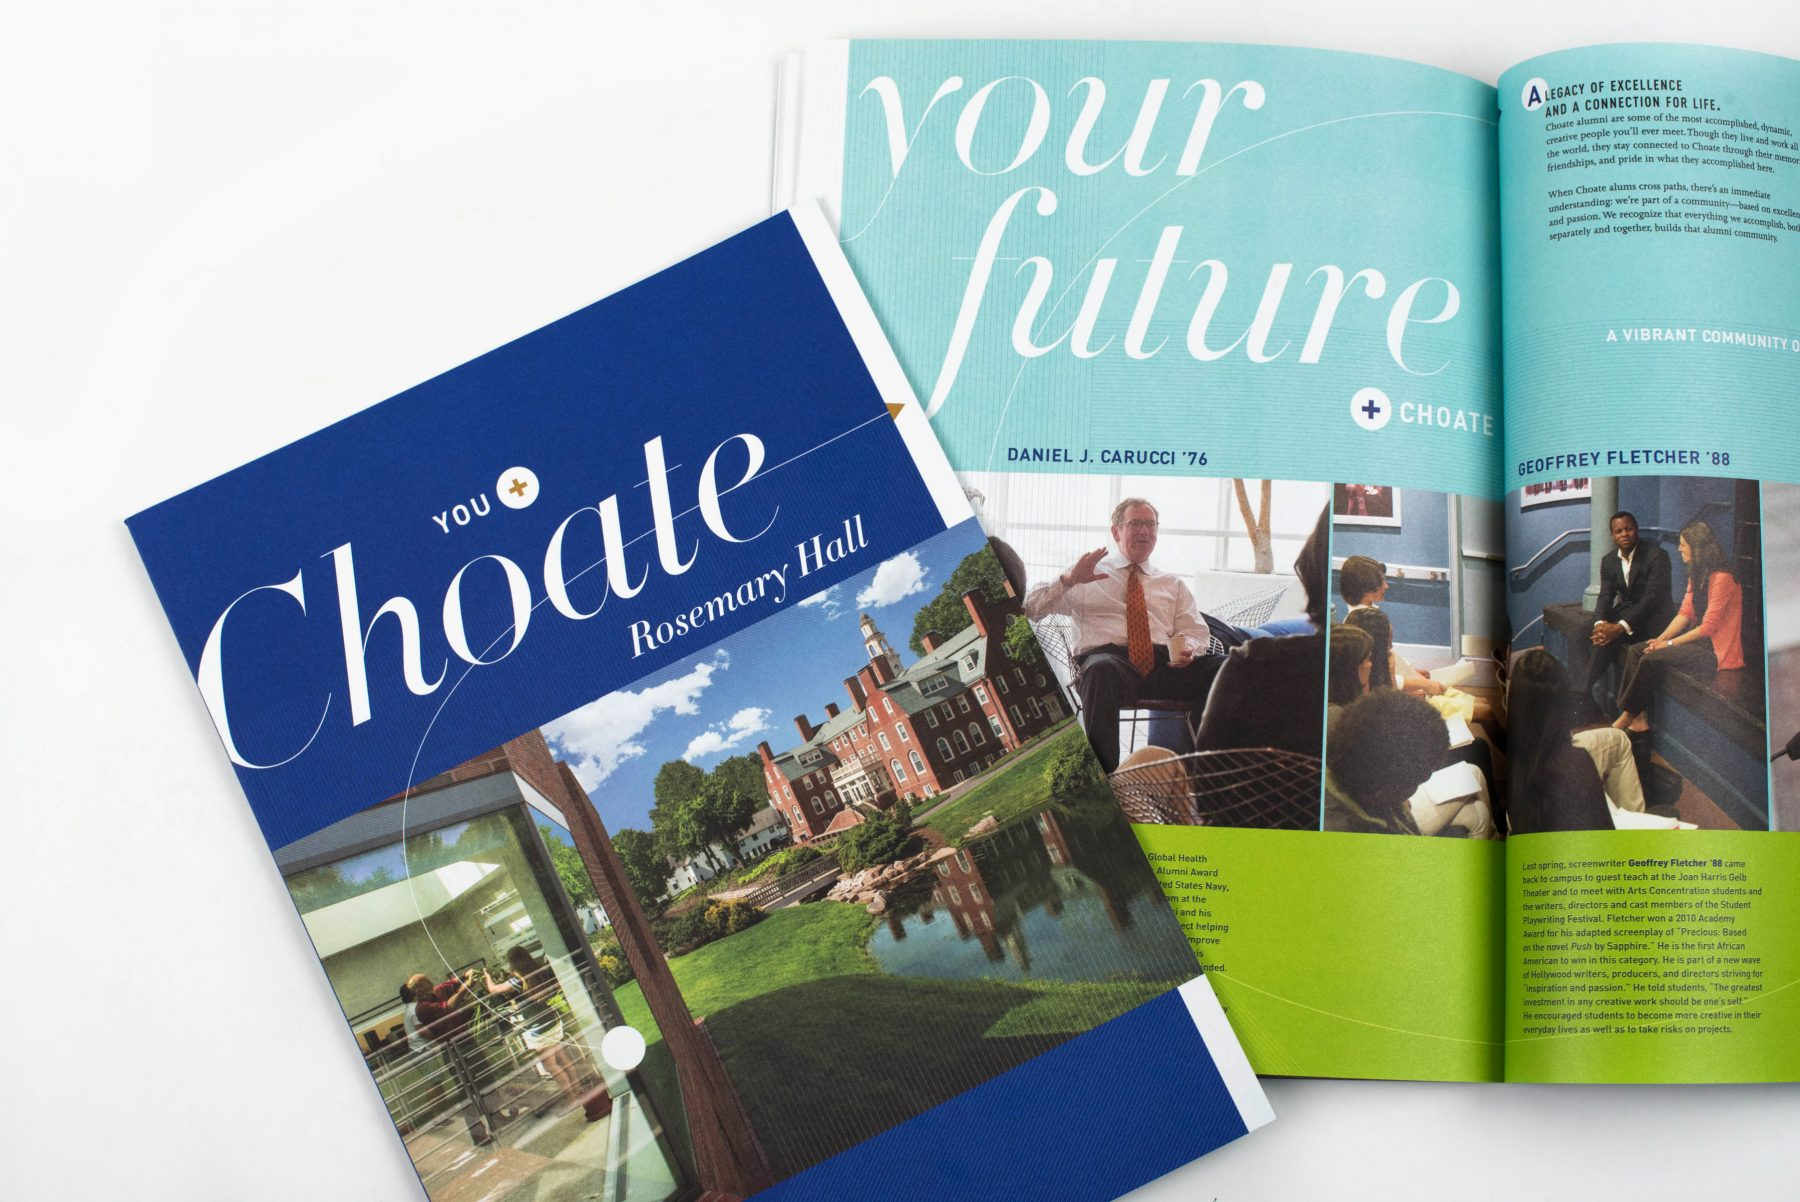 Choate Rosemary Hall viewbook cover and interior spread: Your future